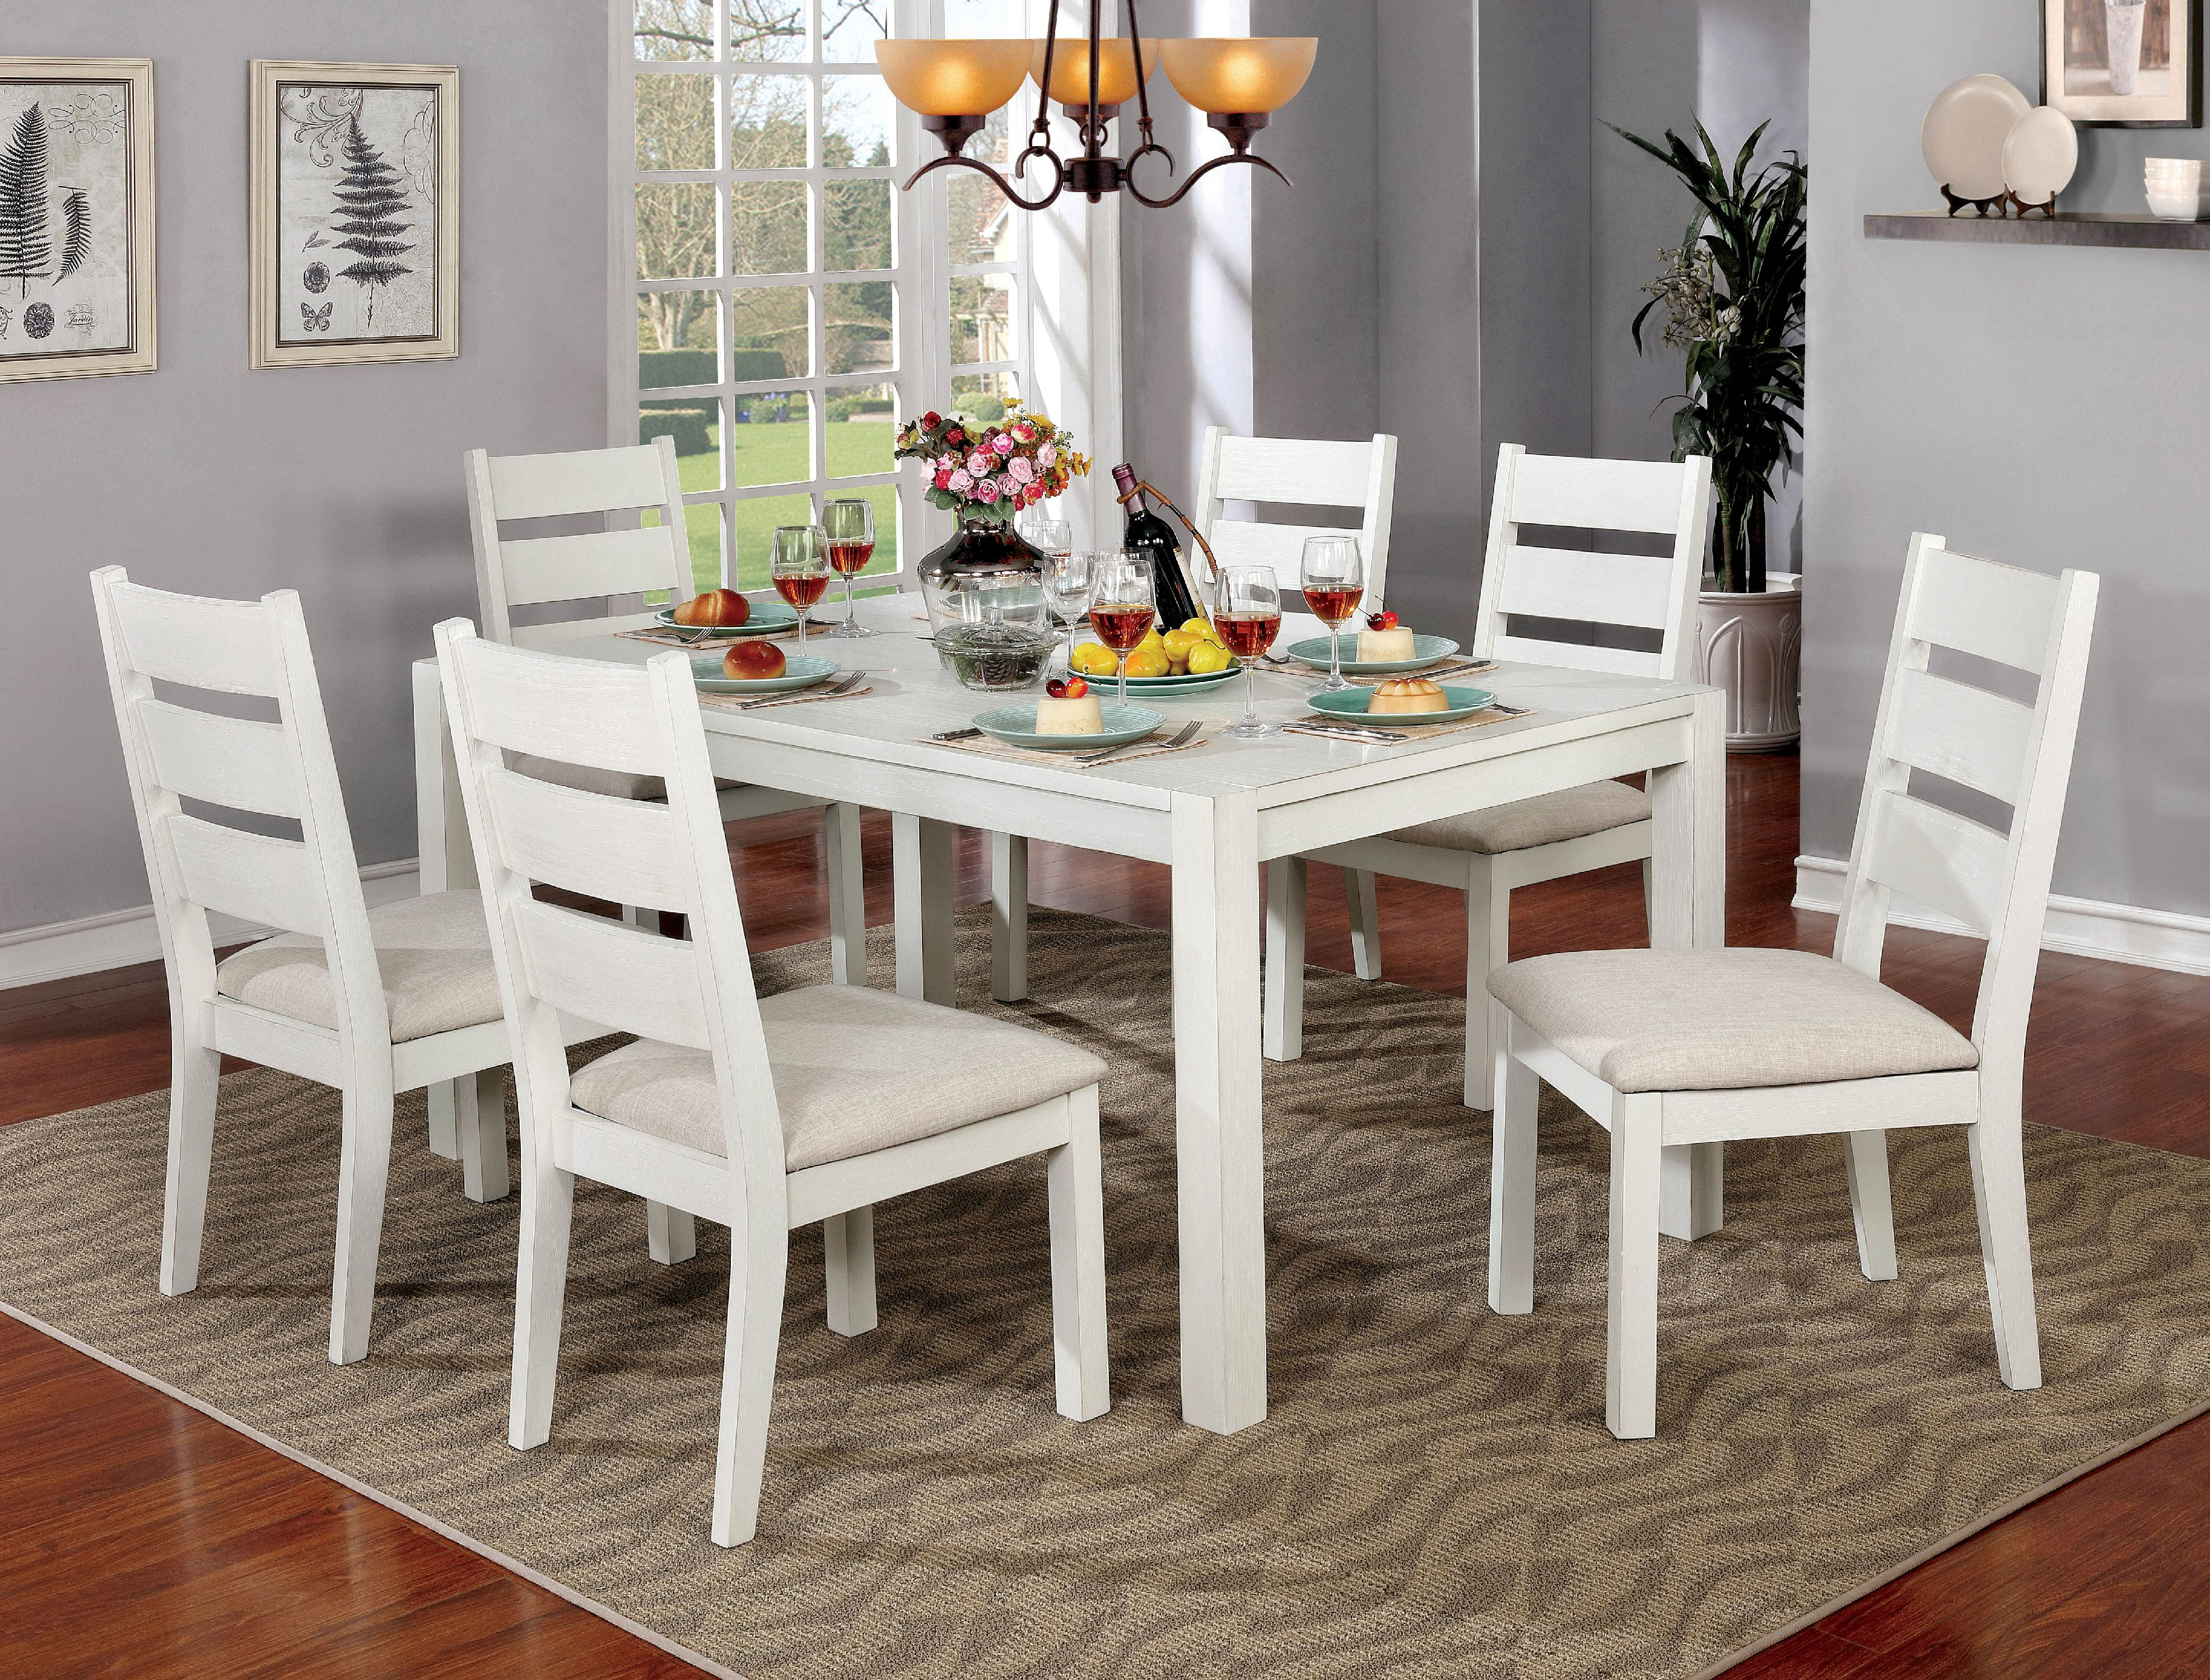 Furniture of America Galveston 7-Piece Rustic Weathered White Dining Table with Leaf Set by Furniture of America